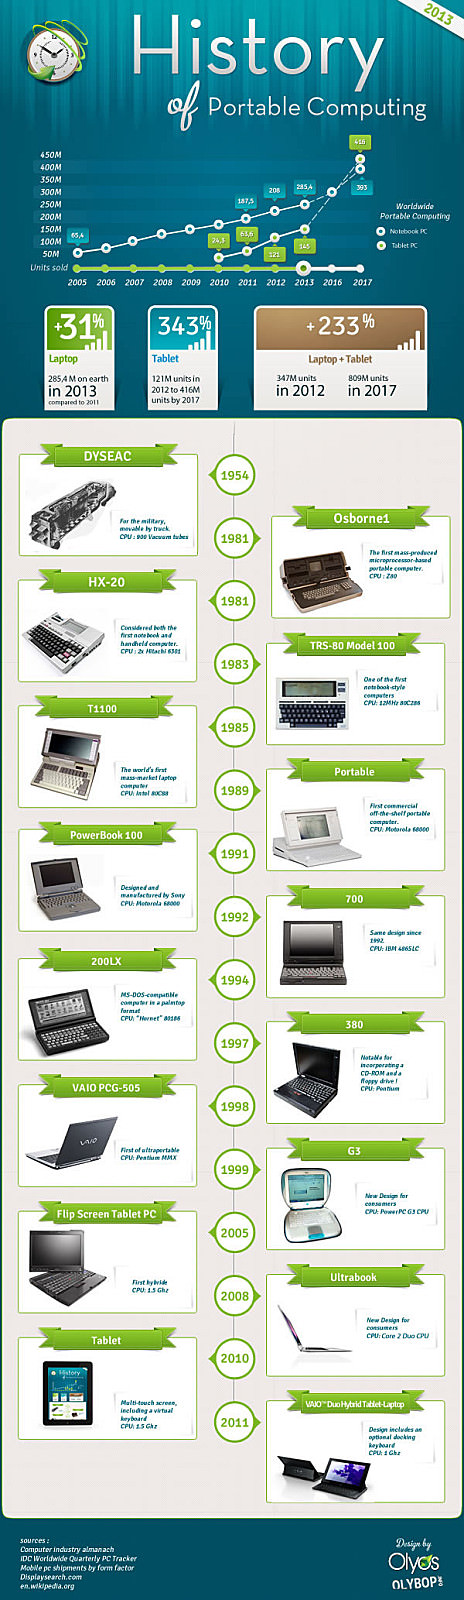 Sony-Branding-Infographie-Laptop-SMALL